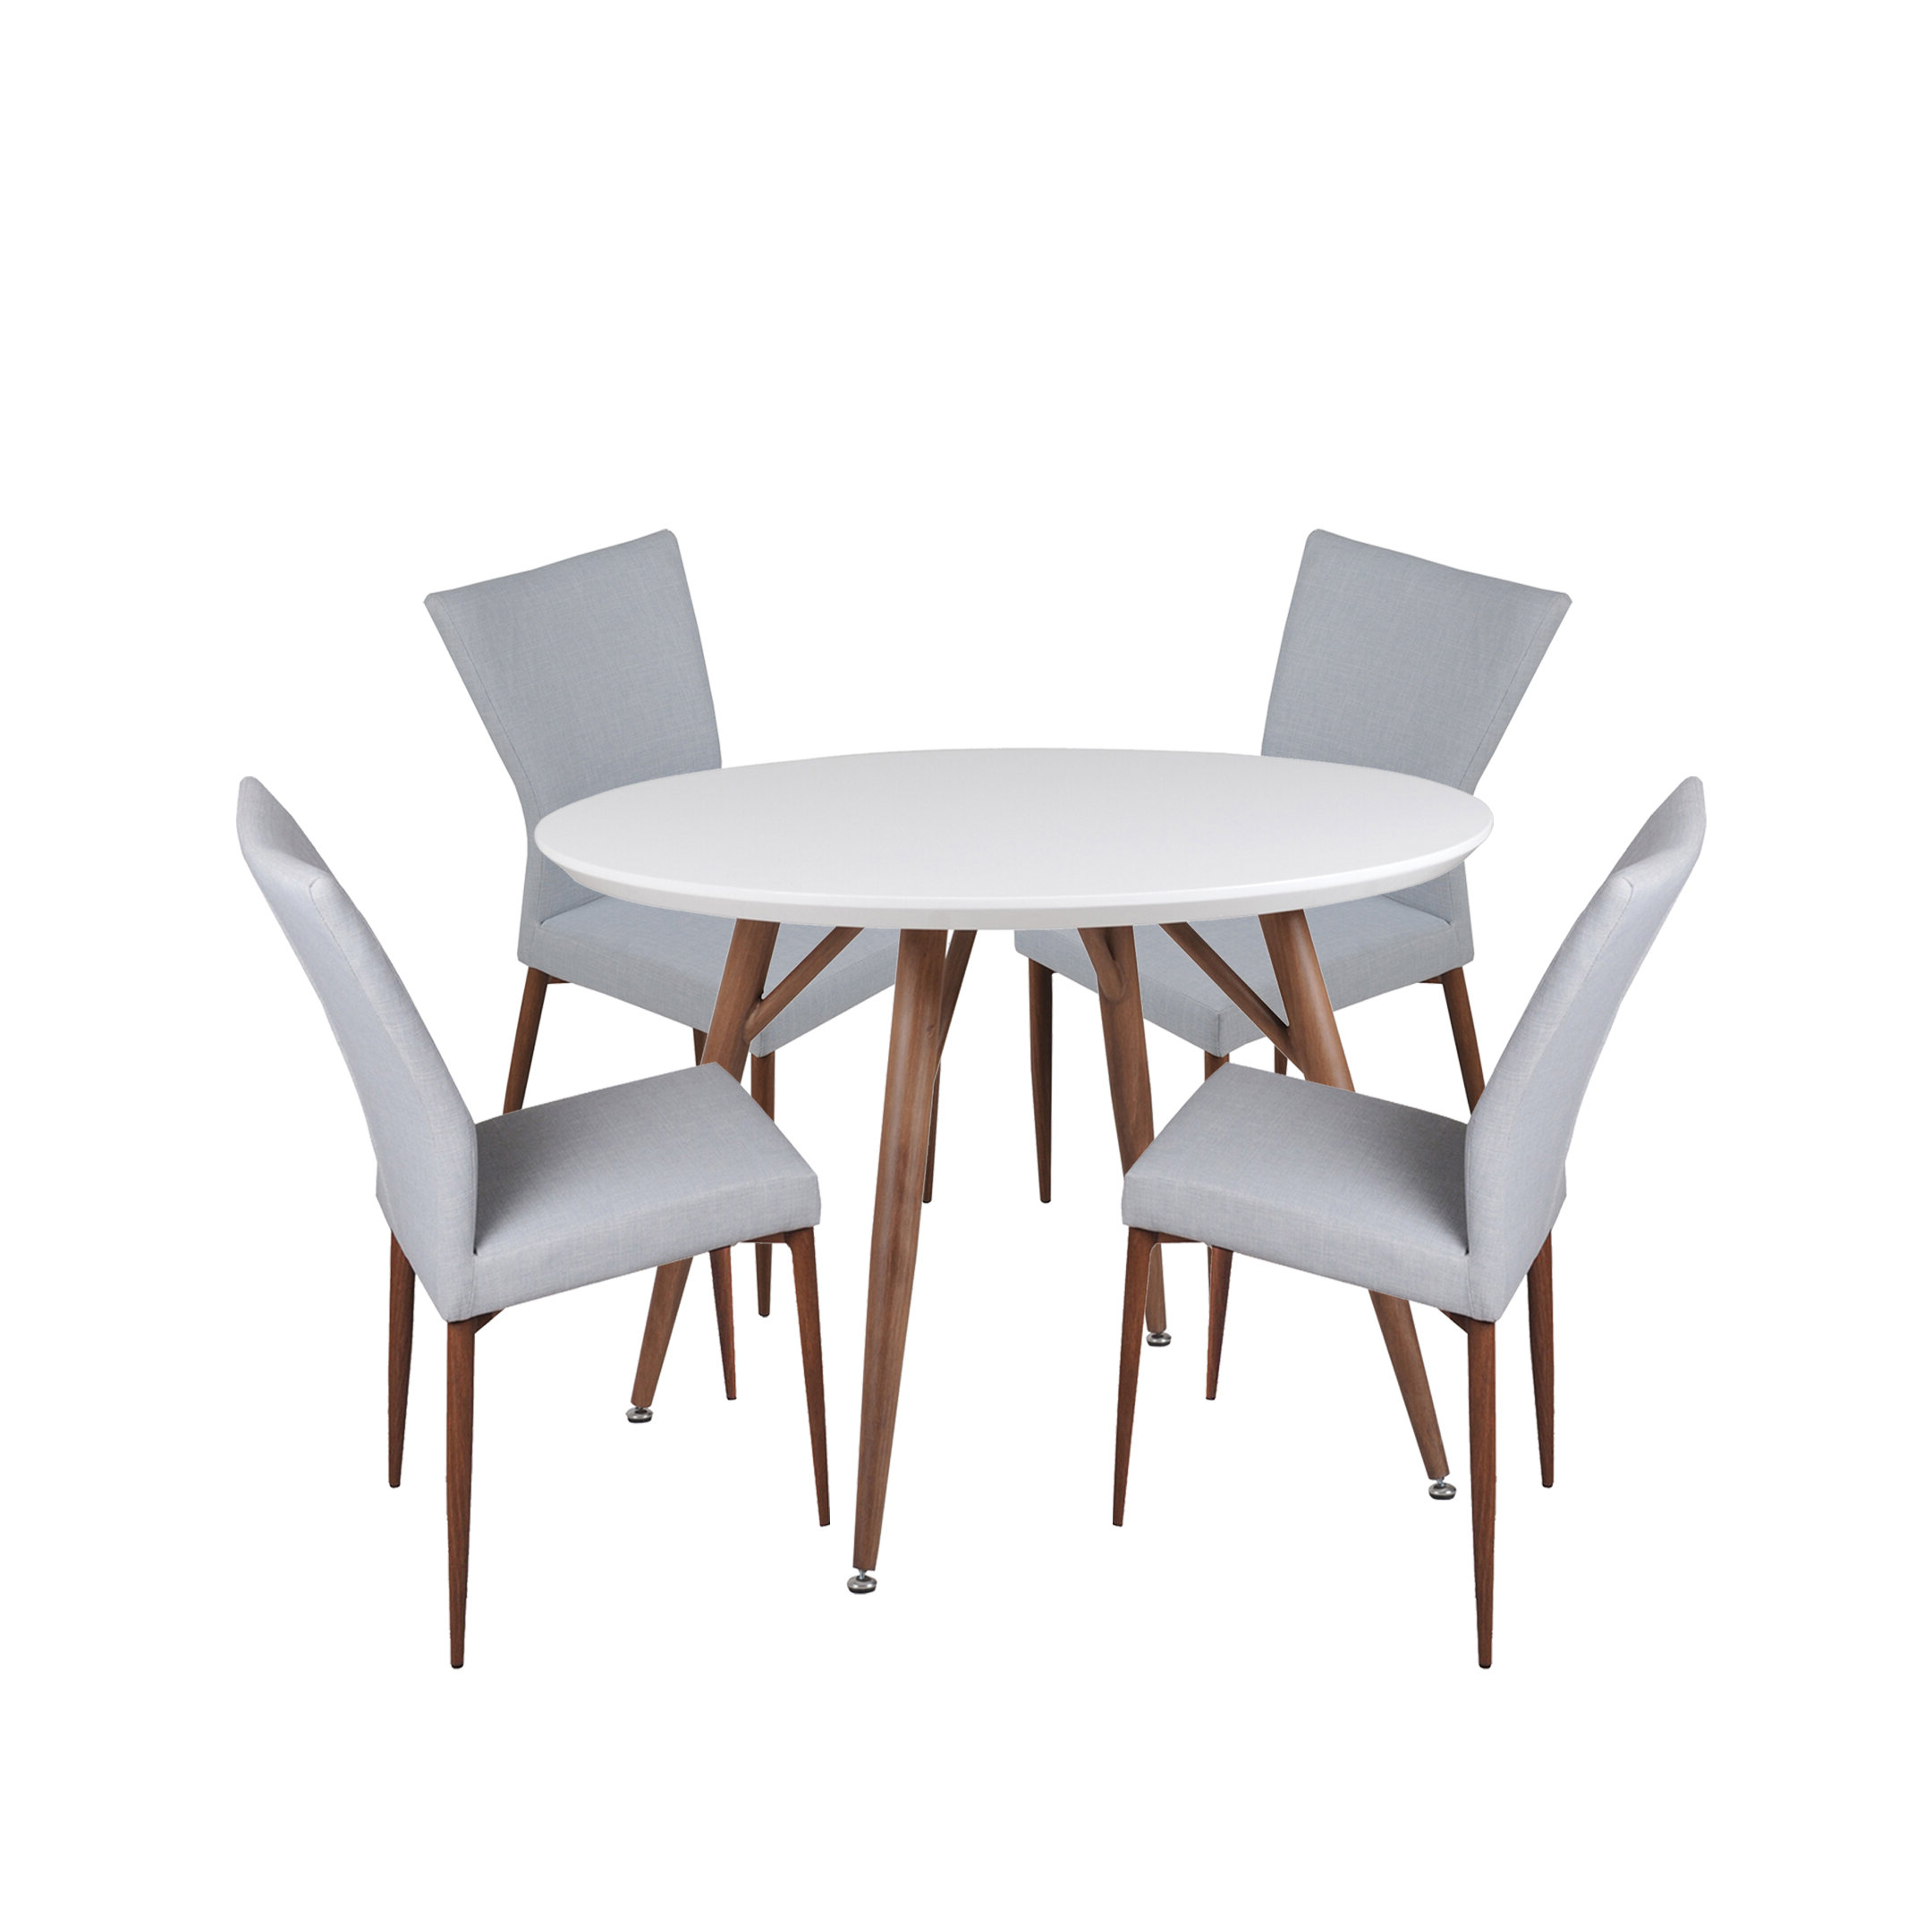 Wayfair Regarding Most Recent 5 Piece Breakfast Nook Dining Sets (View 4 of 25)